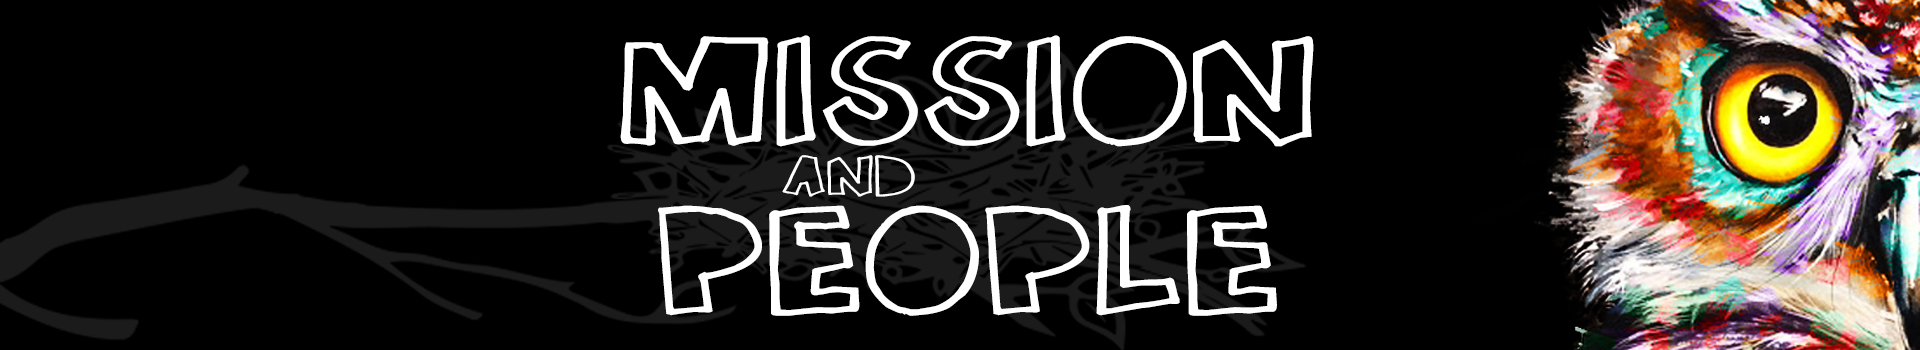 FTE_LO_MISSION_AND_PEOPLE